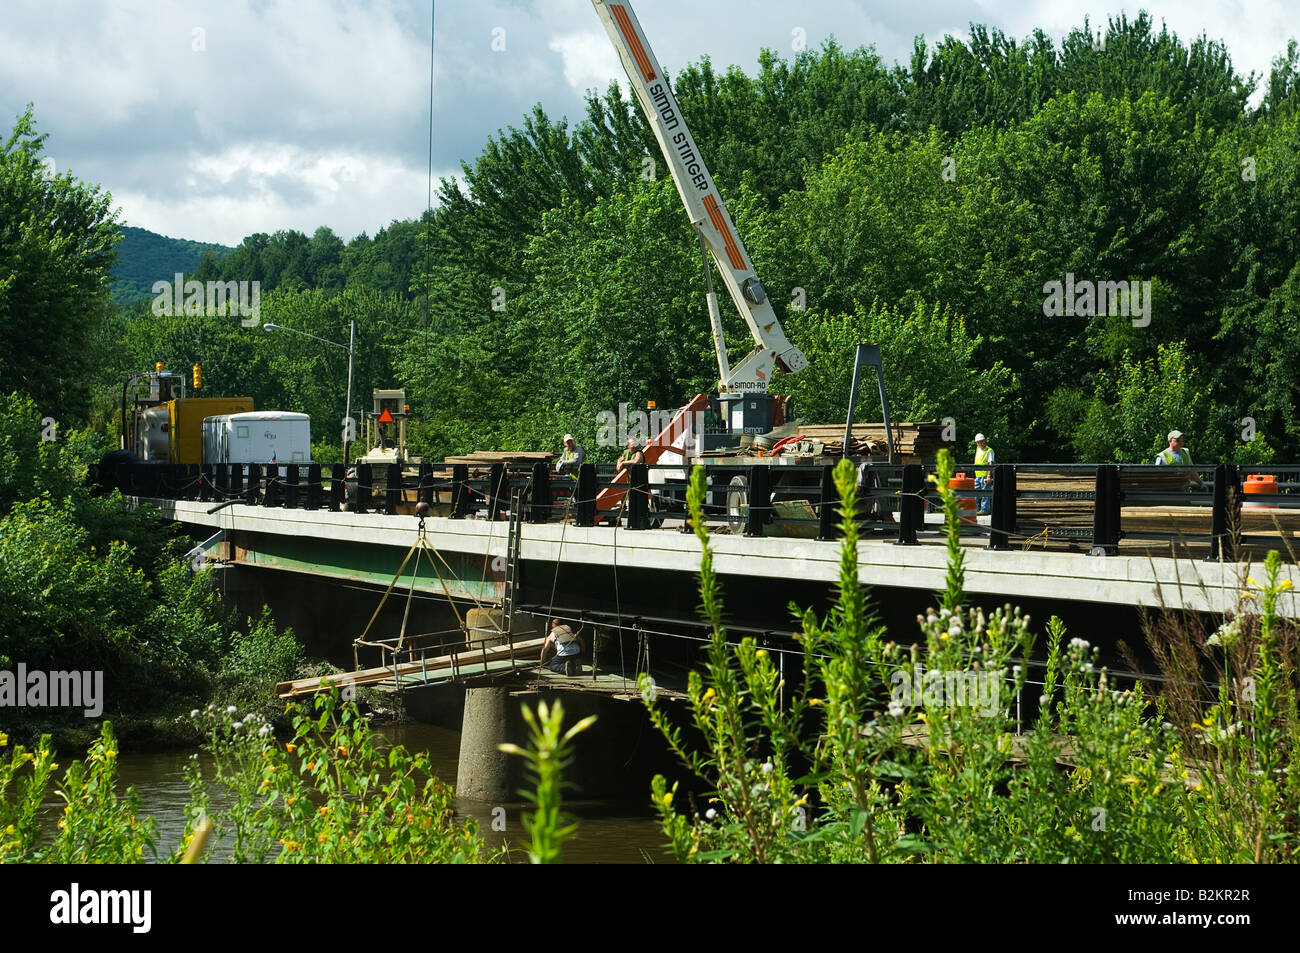 Bridge repair crew working on Wrong Way Bridge over the LaMoille River in Cambridge, VT US after recent flooding - Stock Image